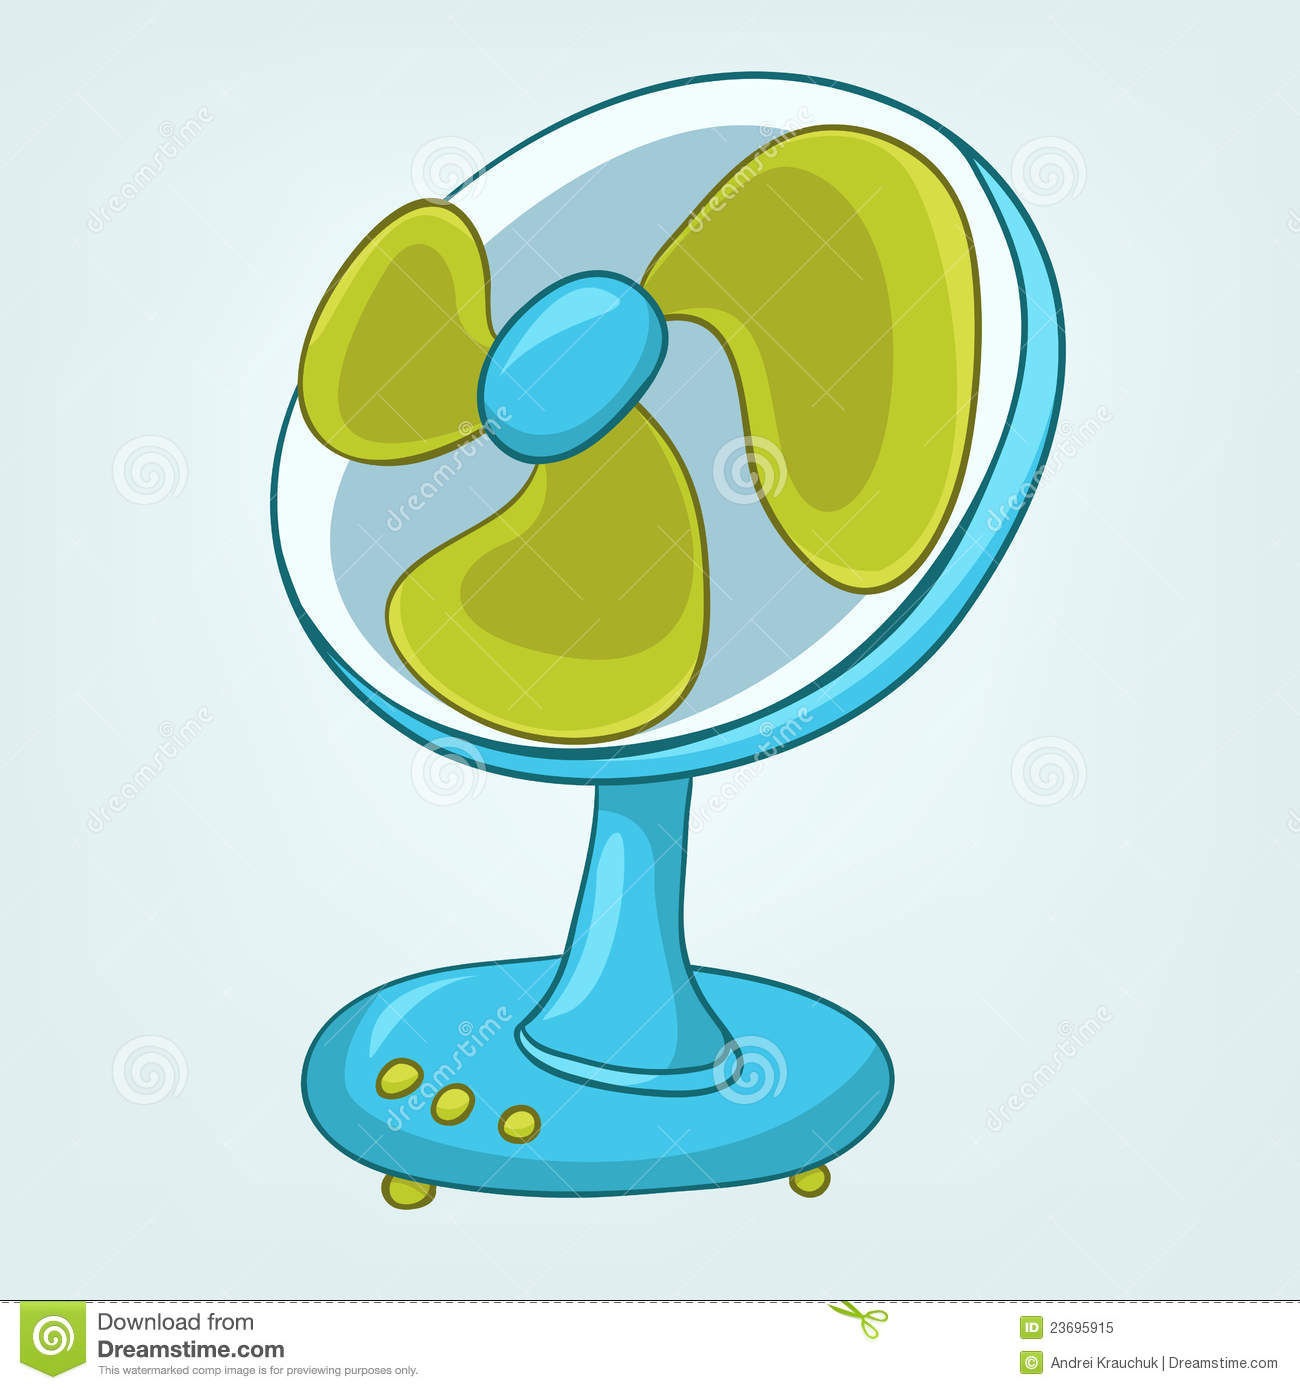 Cartoons Home Appliences Fan Royalty Free Stock Photo ...